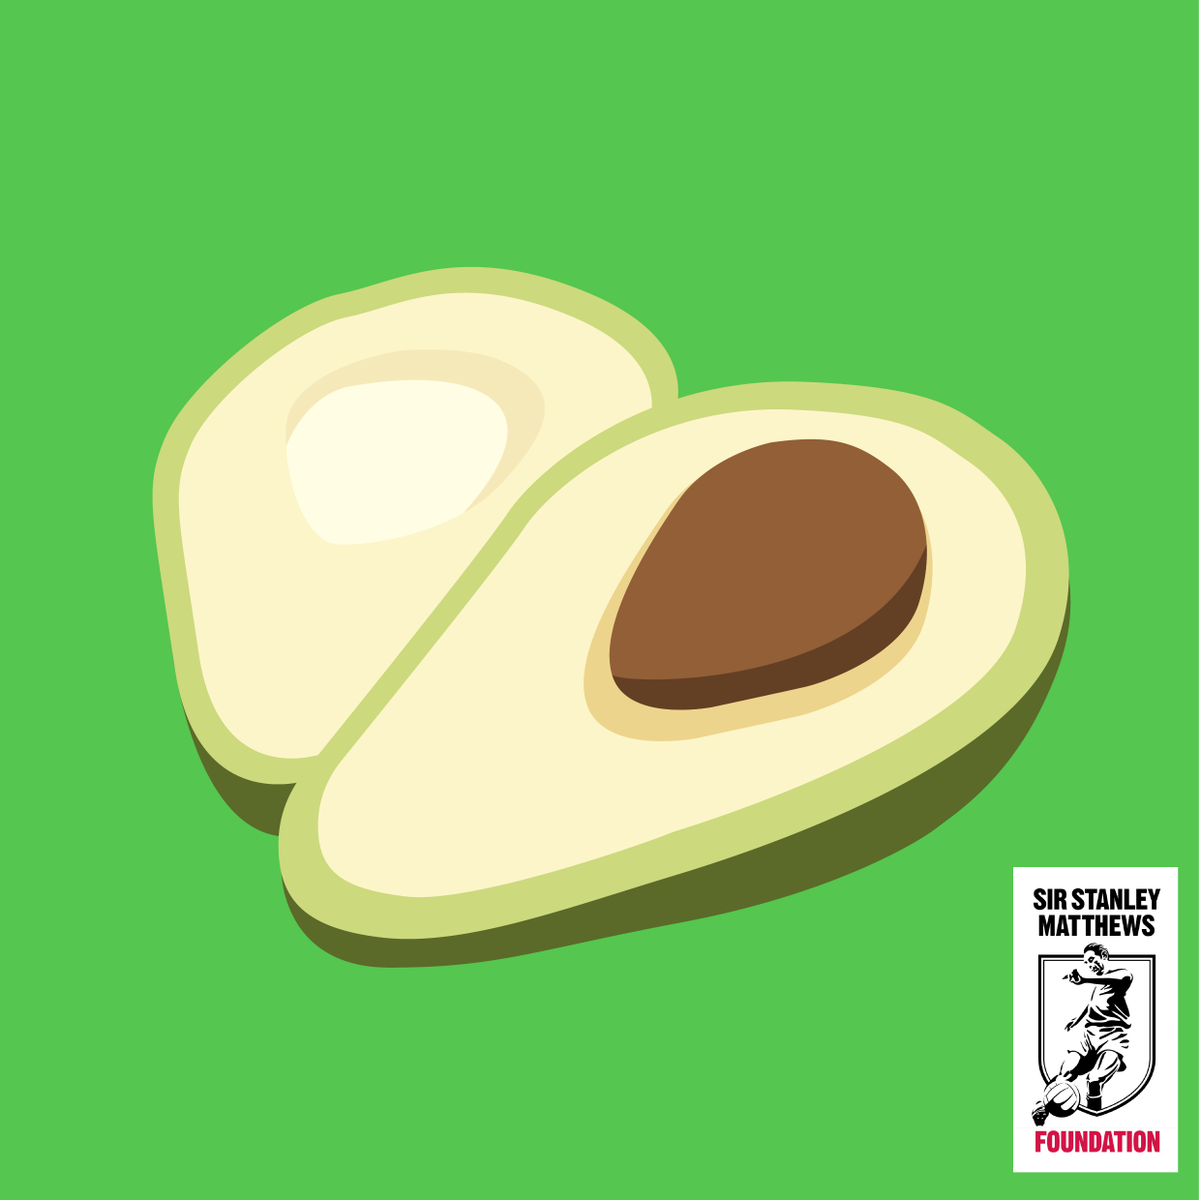 The #avocado has numerous health benefits due to being loaded with healthy fats and various important nutrients. They can help with weight loss due to being high in fibre and low in carbs, and also keep you fuller for longer meaning you eat fewer calories.  #health #fruit https://t.co/rqPIFNHRPU